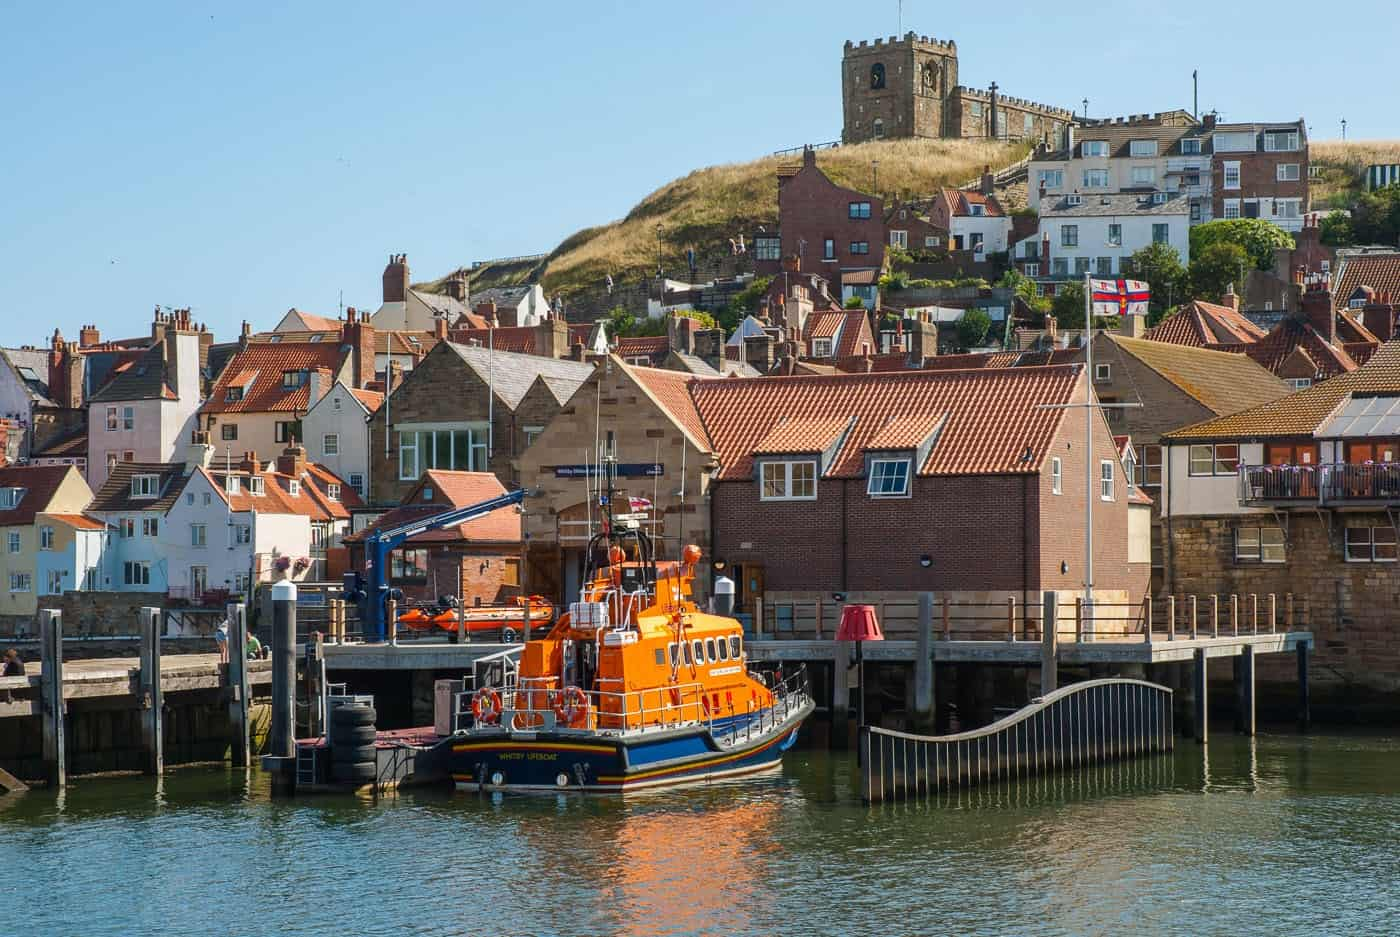 Whitby-lifeboat-station-0155